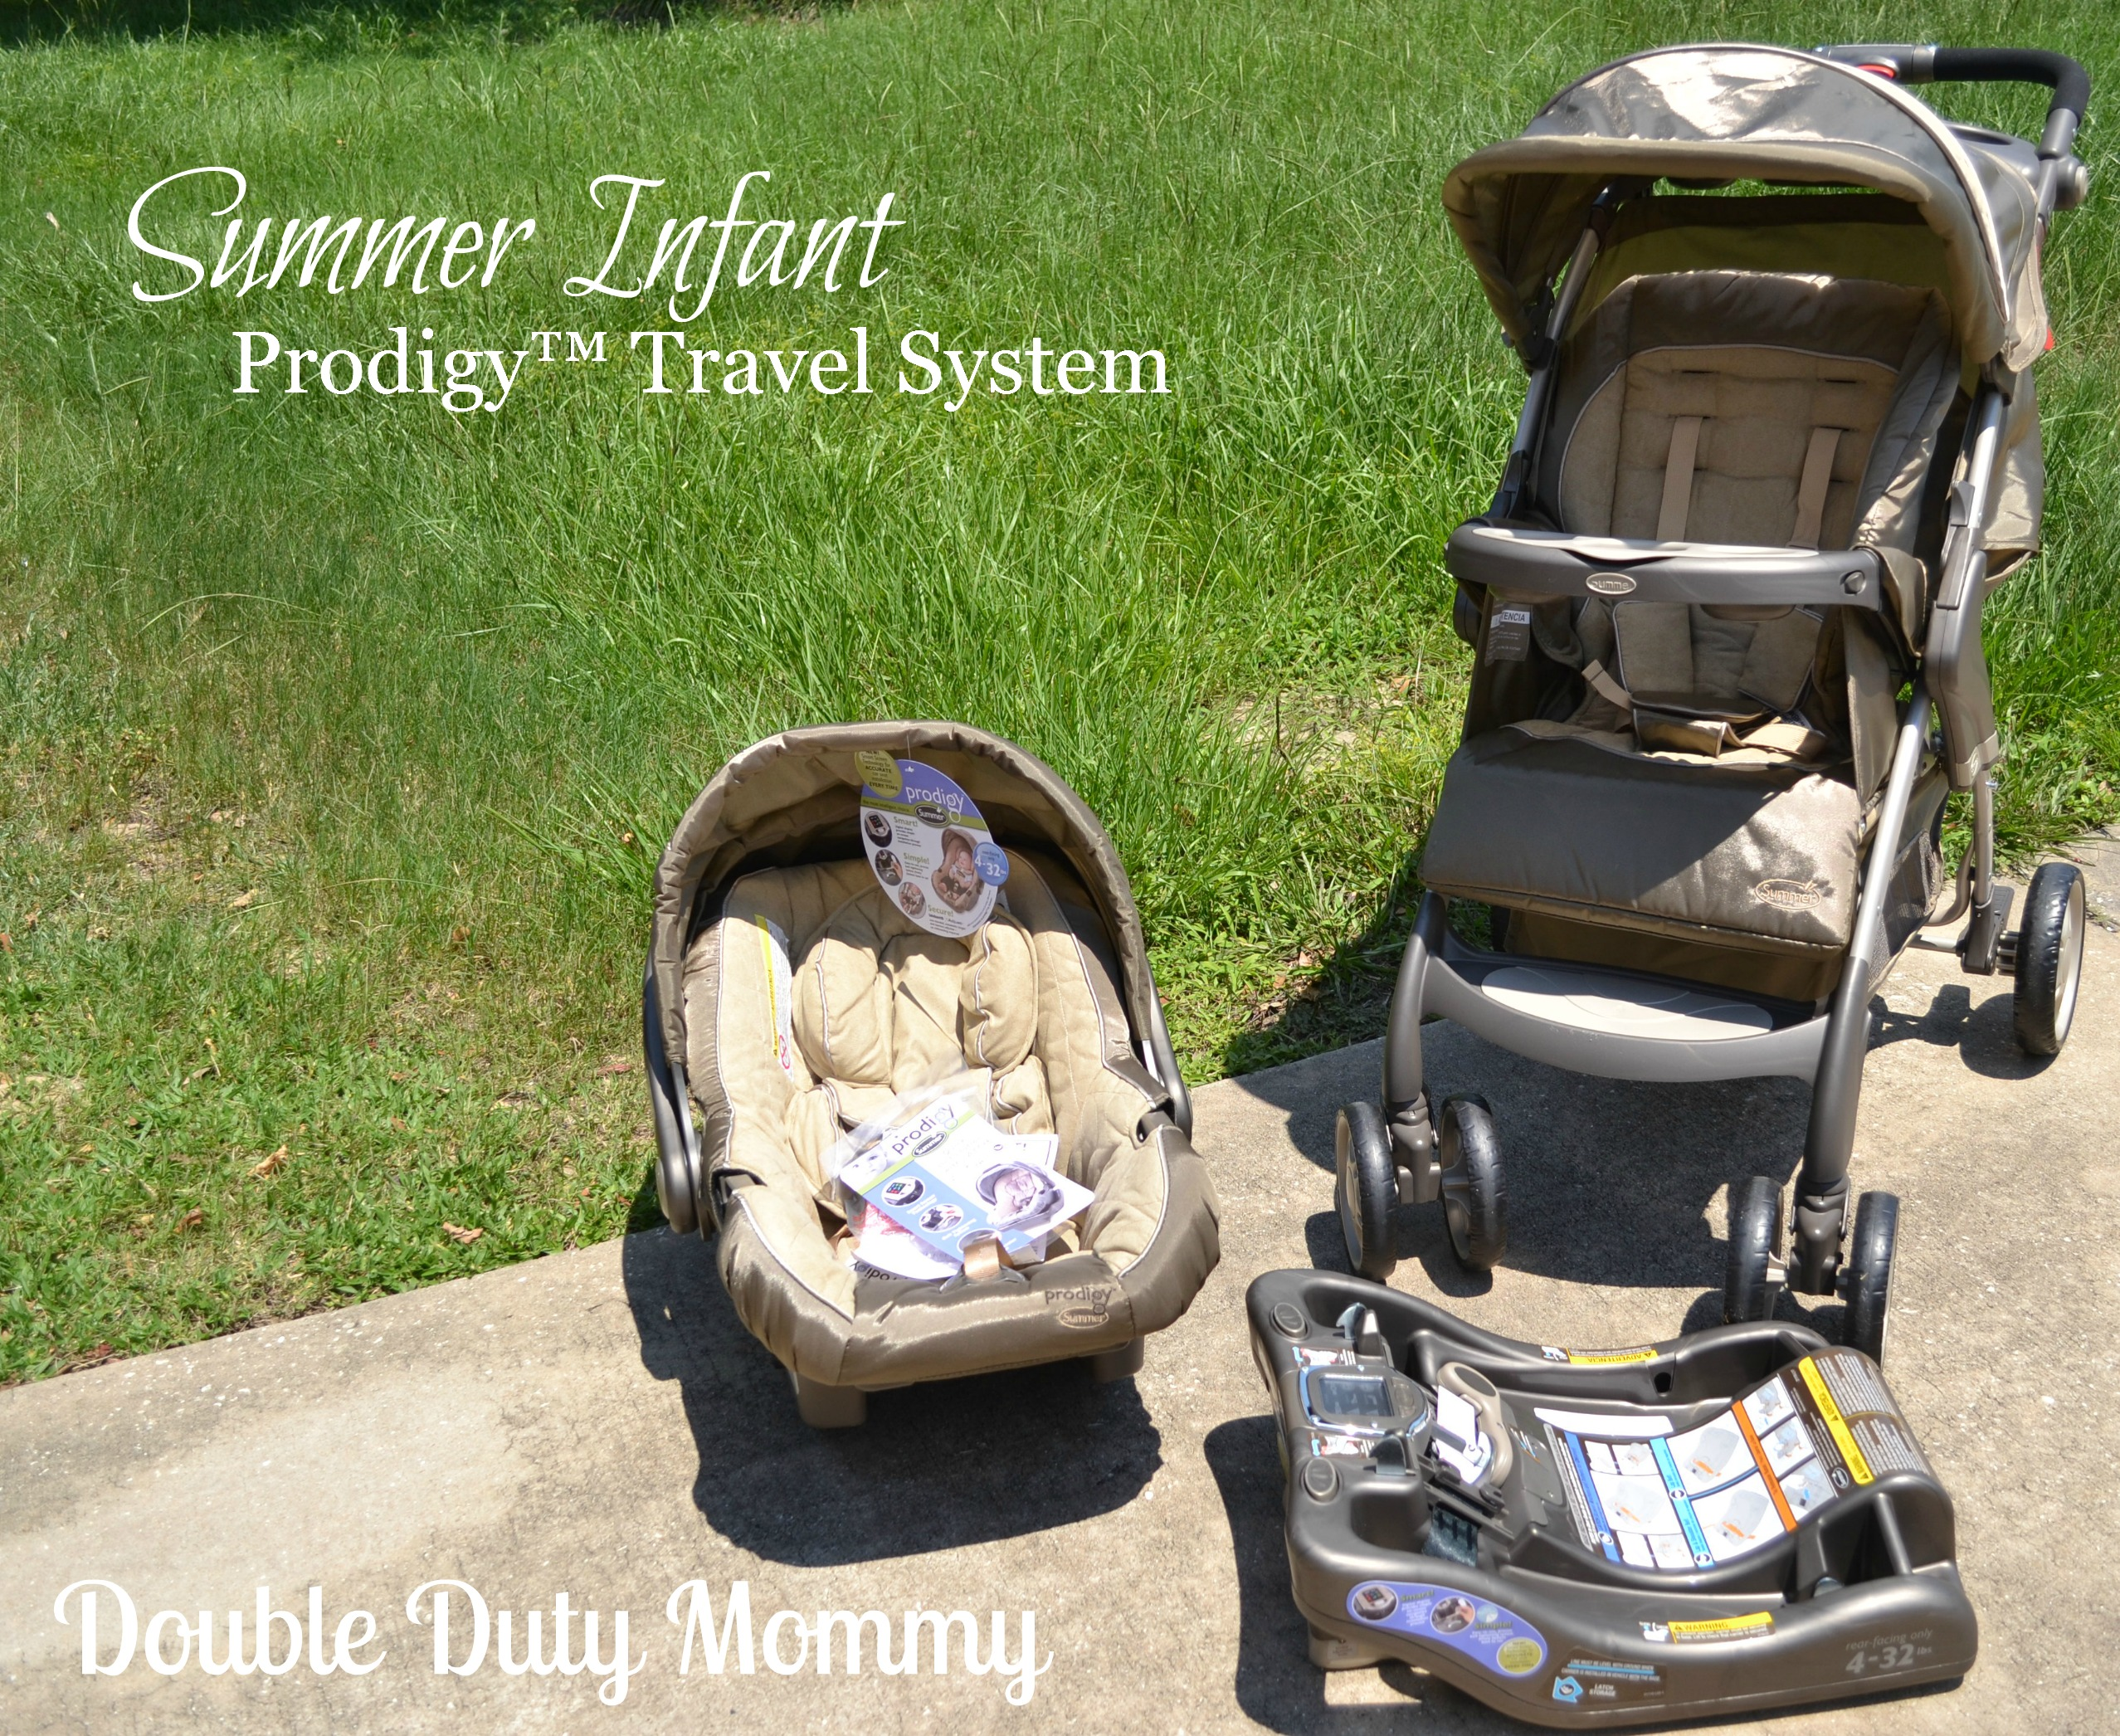 Summer Infant Prodigy Review And Giveaway Double Duty Mommy